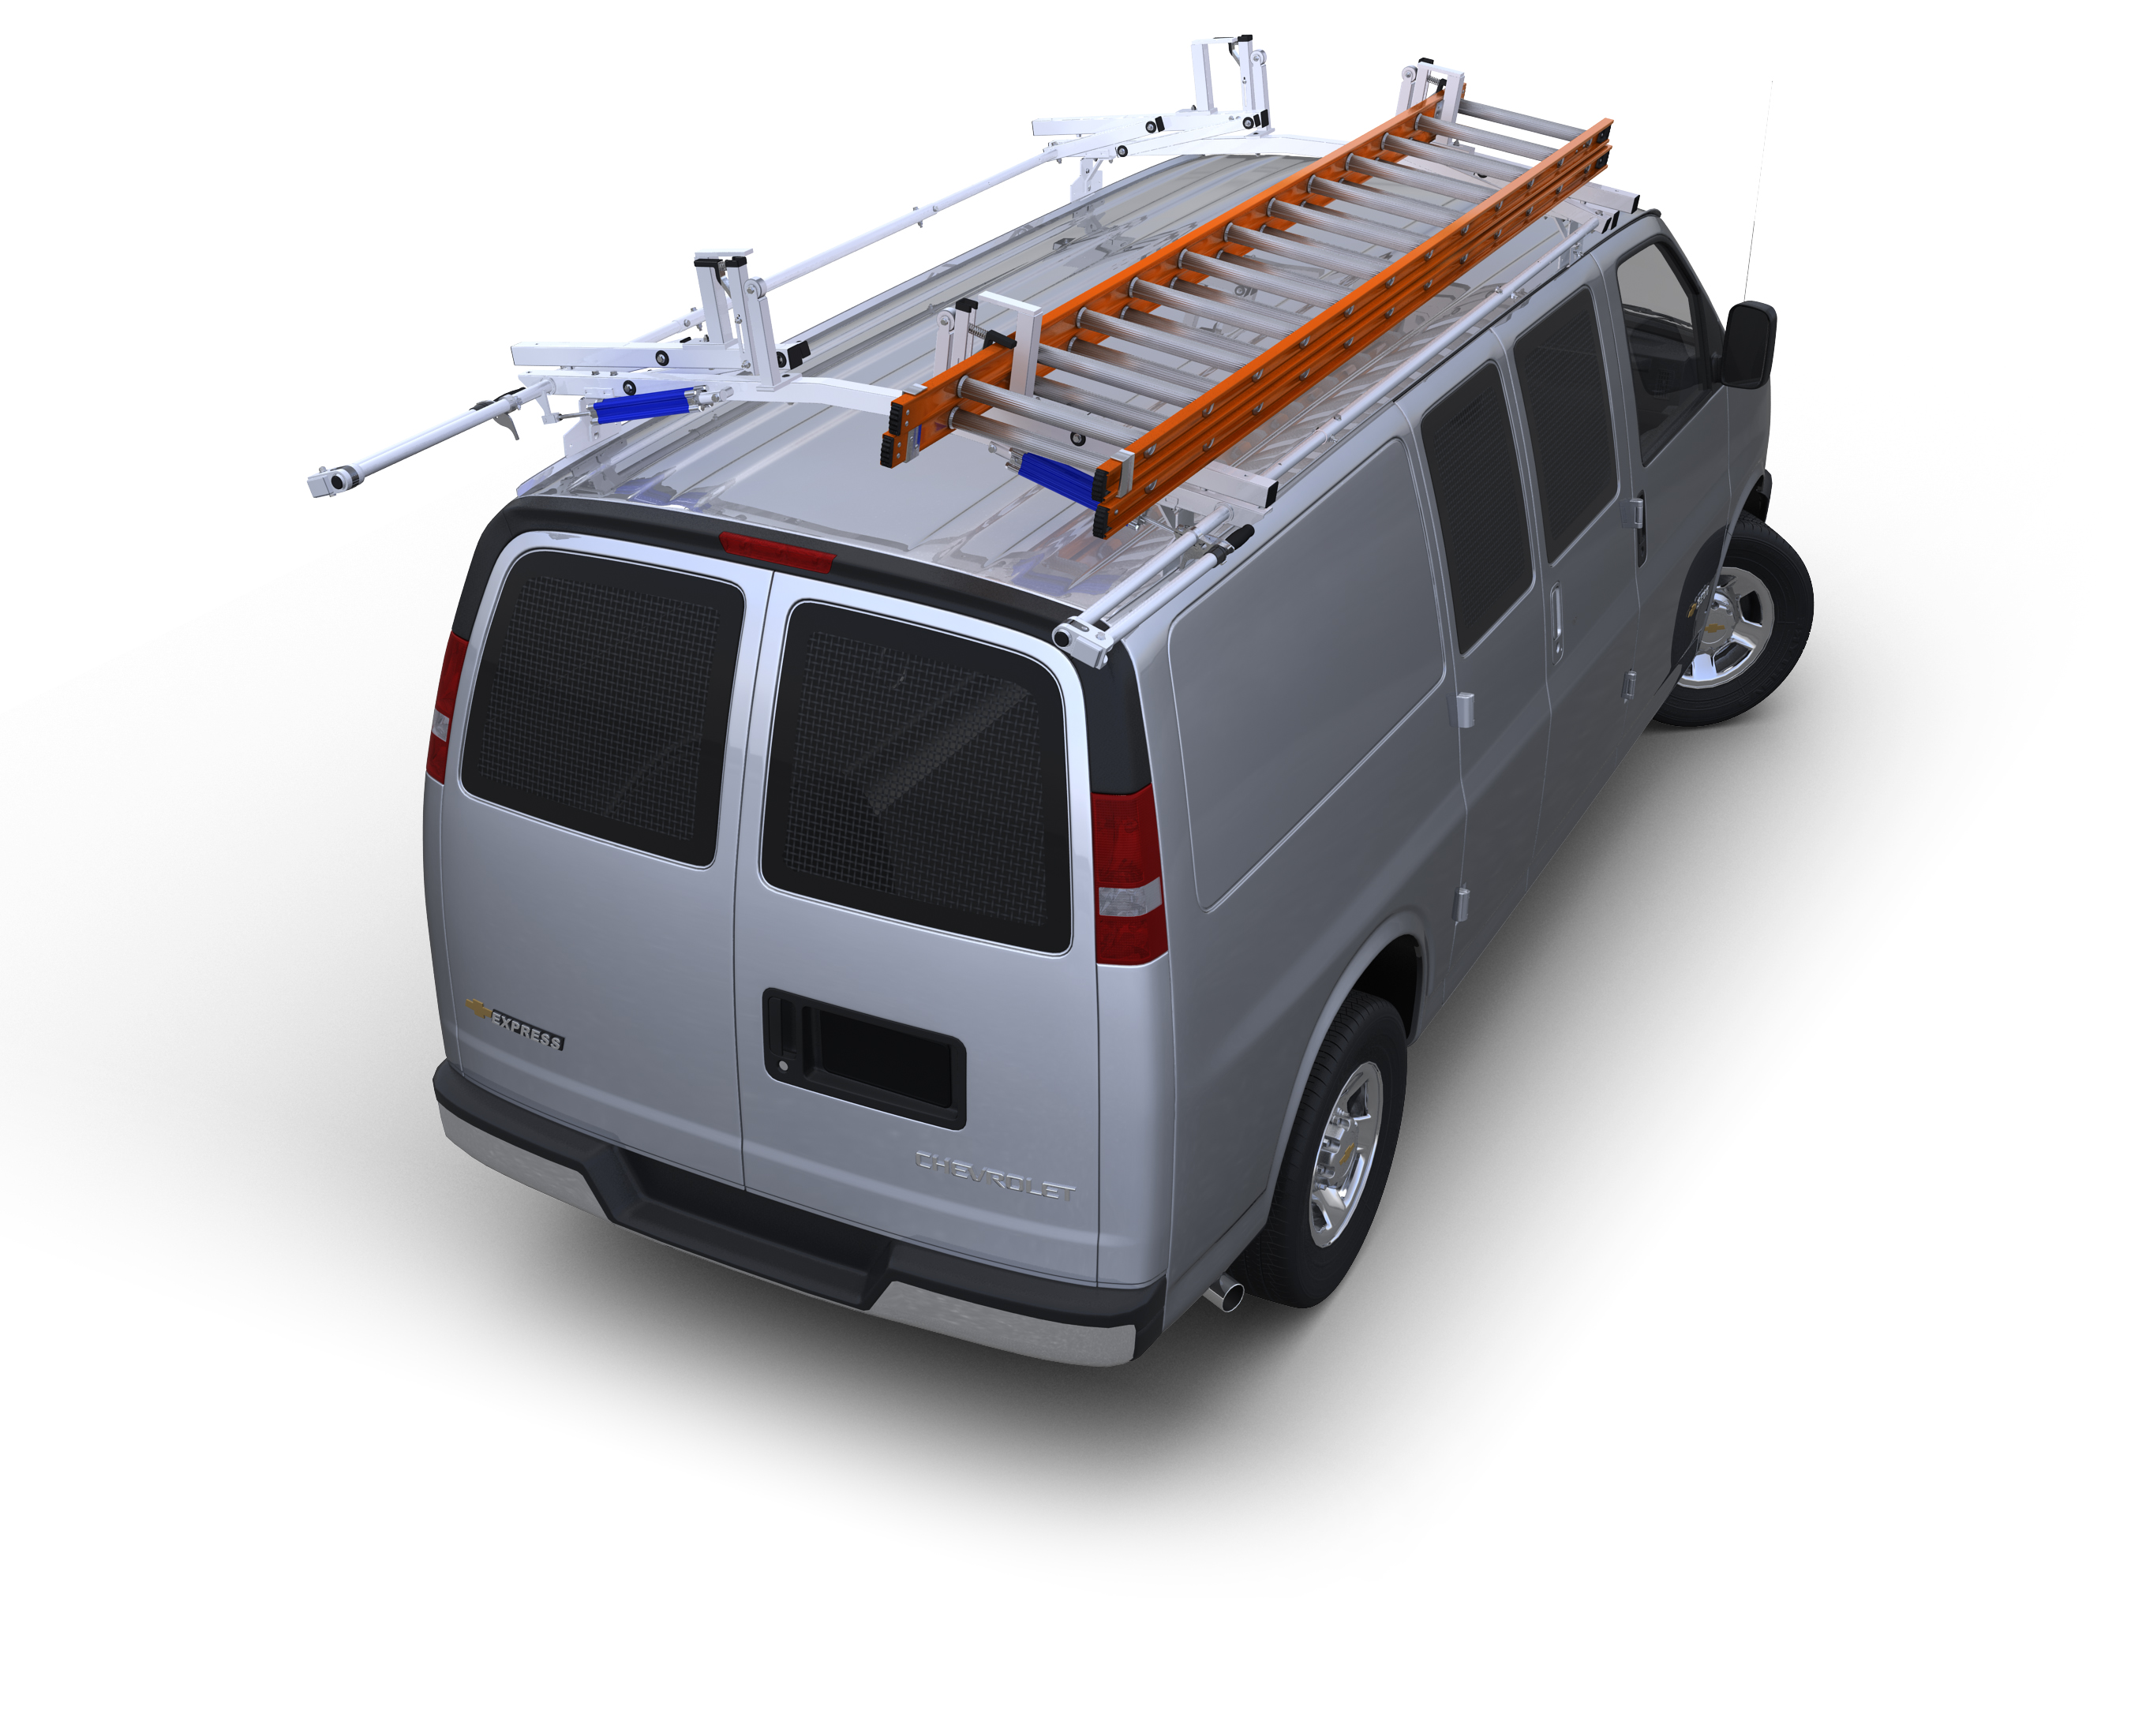 The All Aluminu-mercedes_sprinter_low_roof_alurack_rear3422